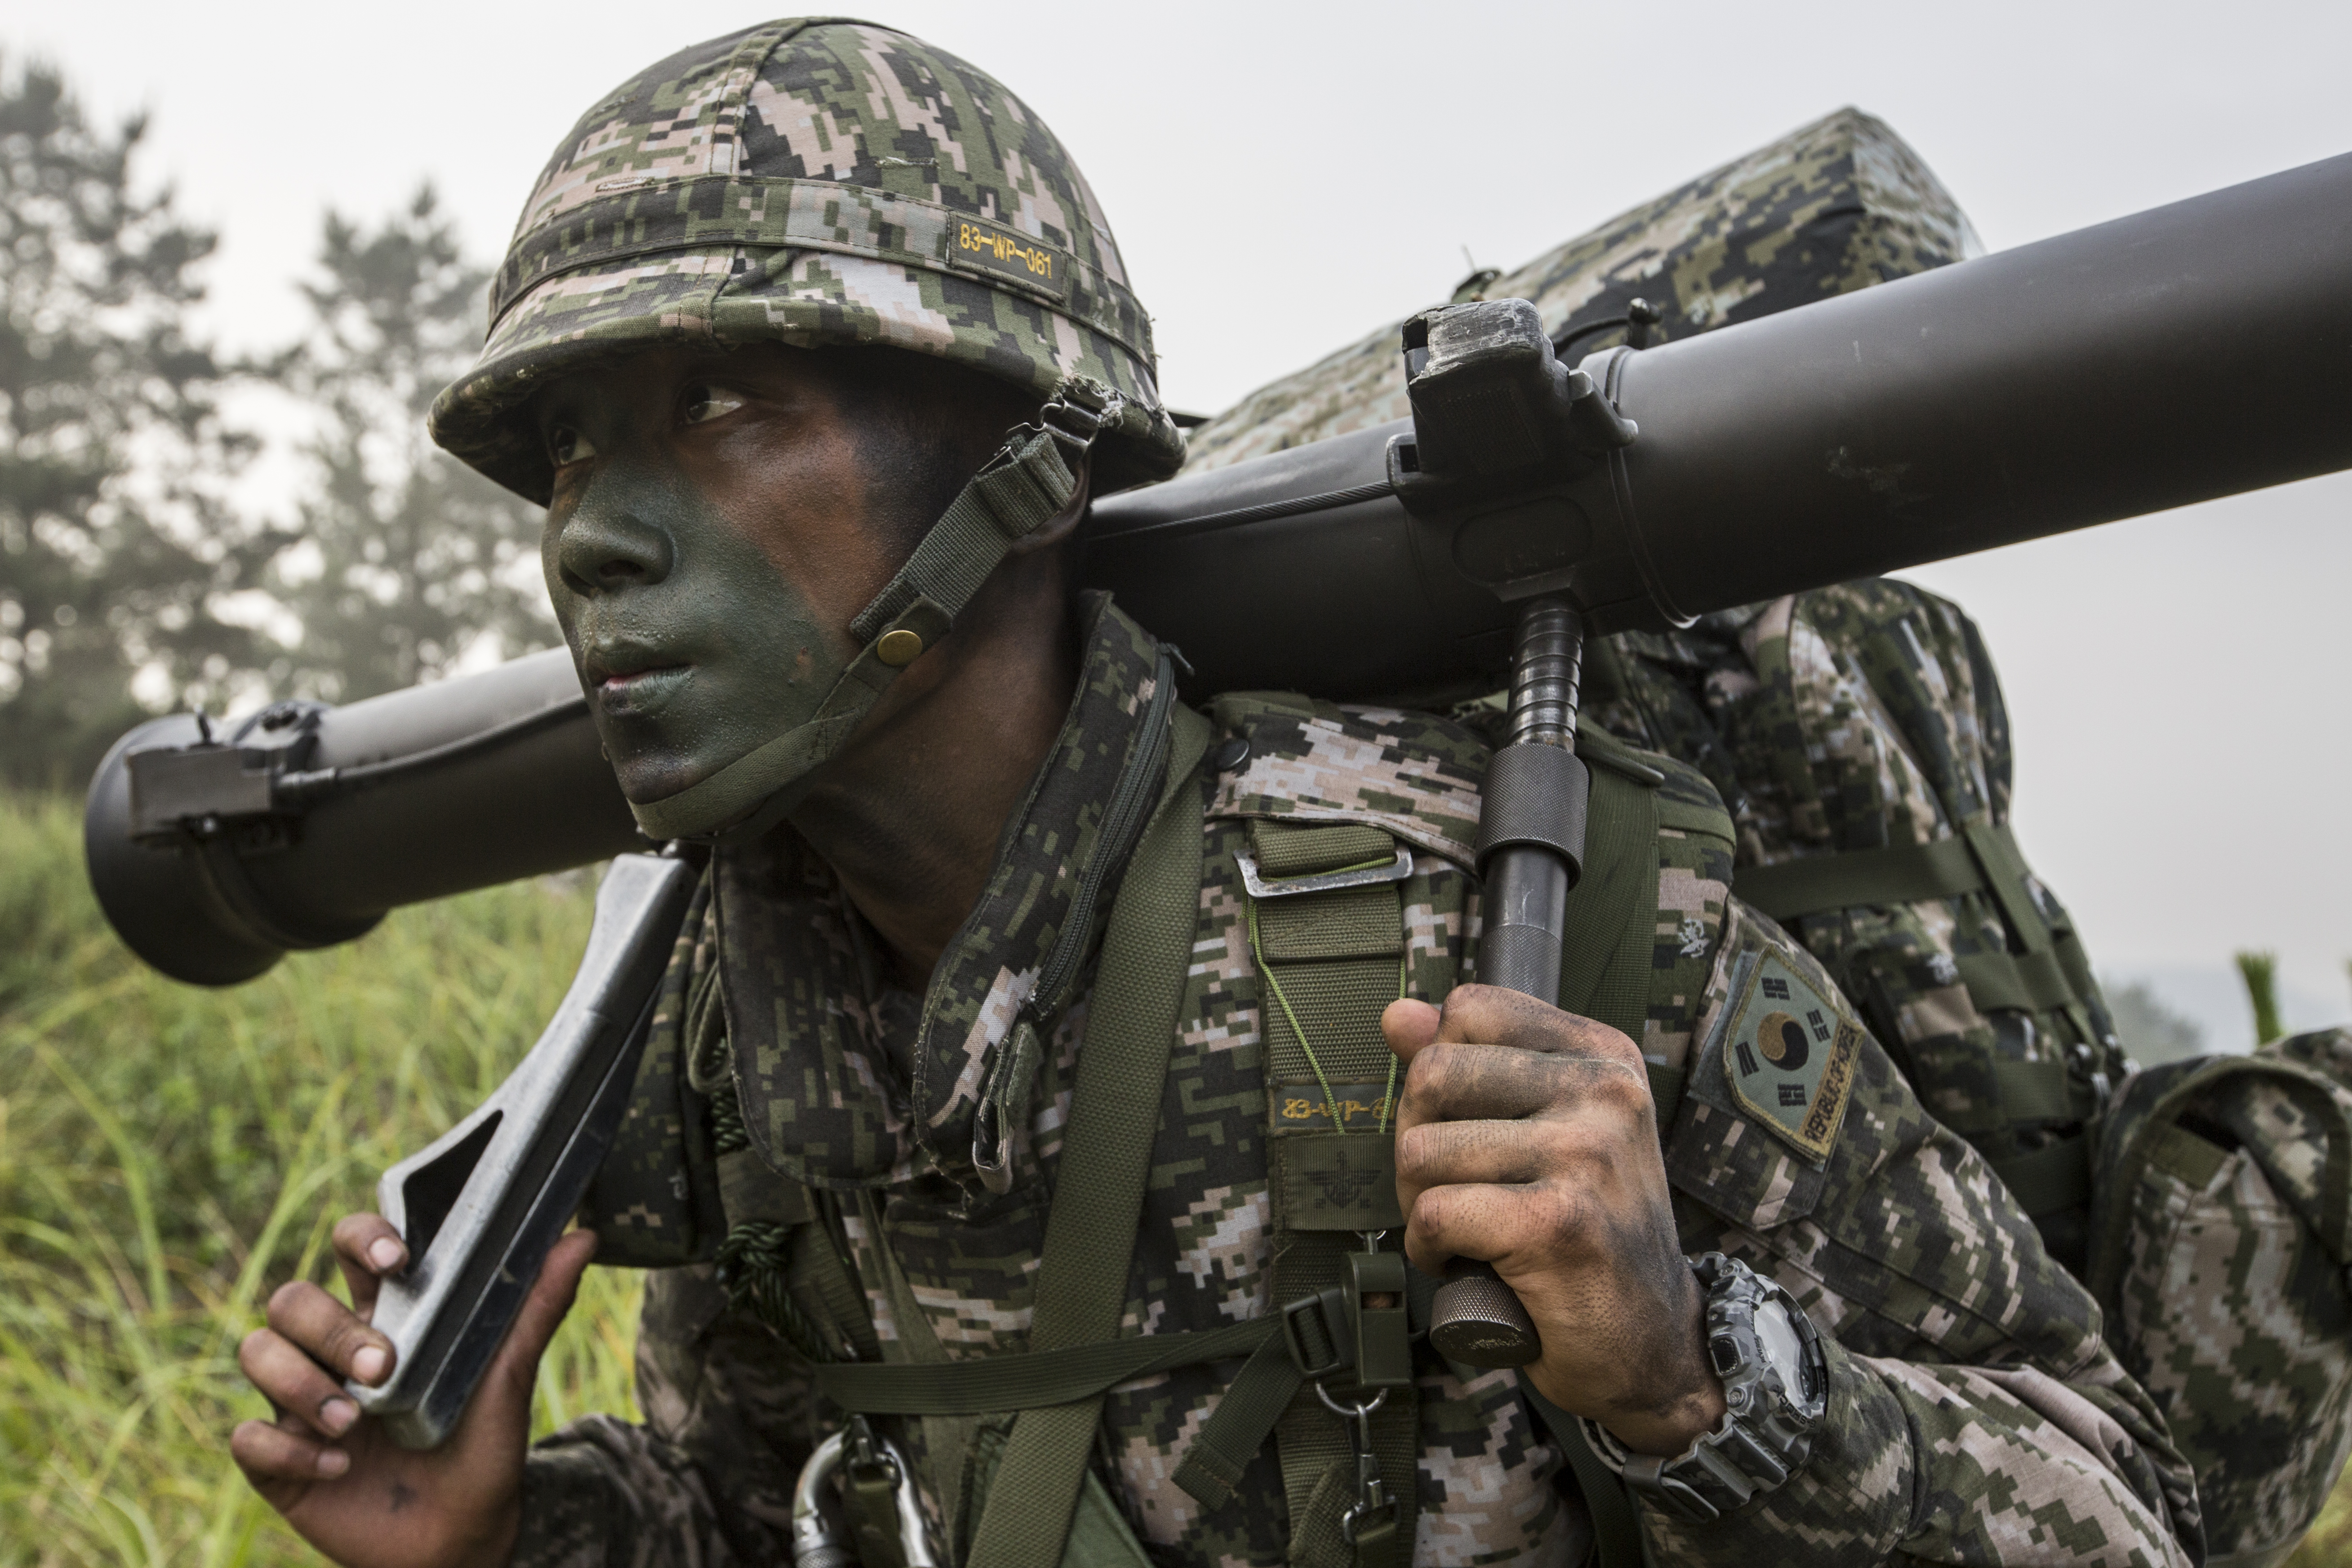 ROK marine lugging a 90mm M67 recoilless rifle [5233 x 3489 ...